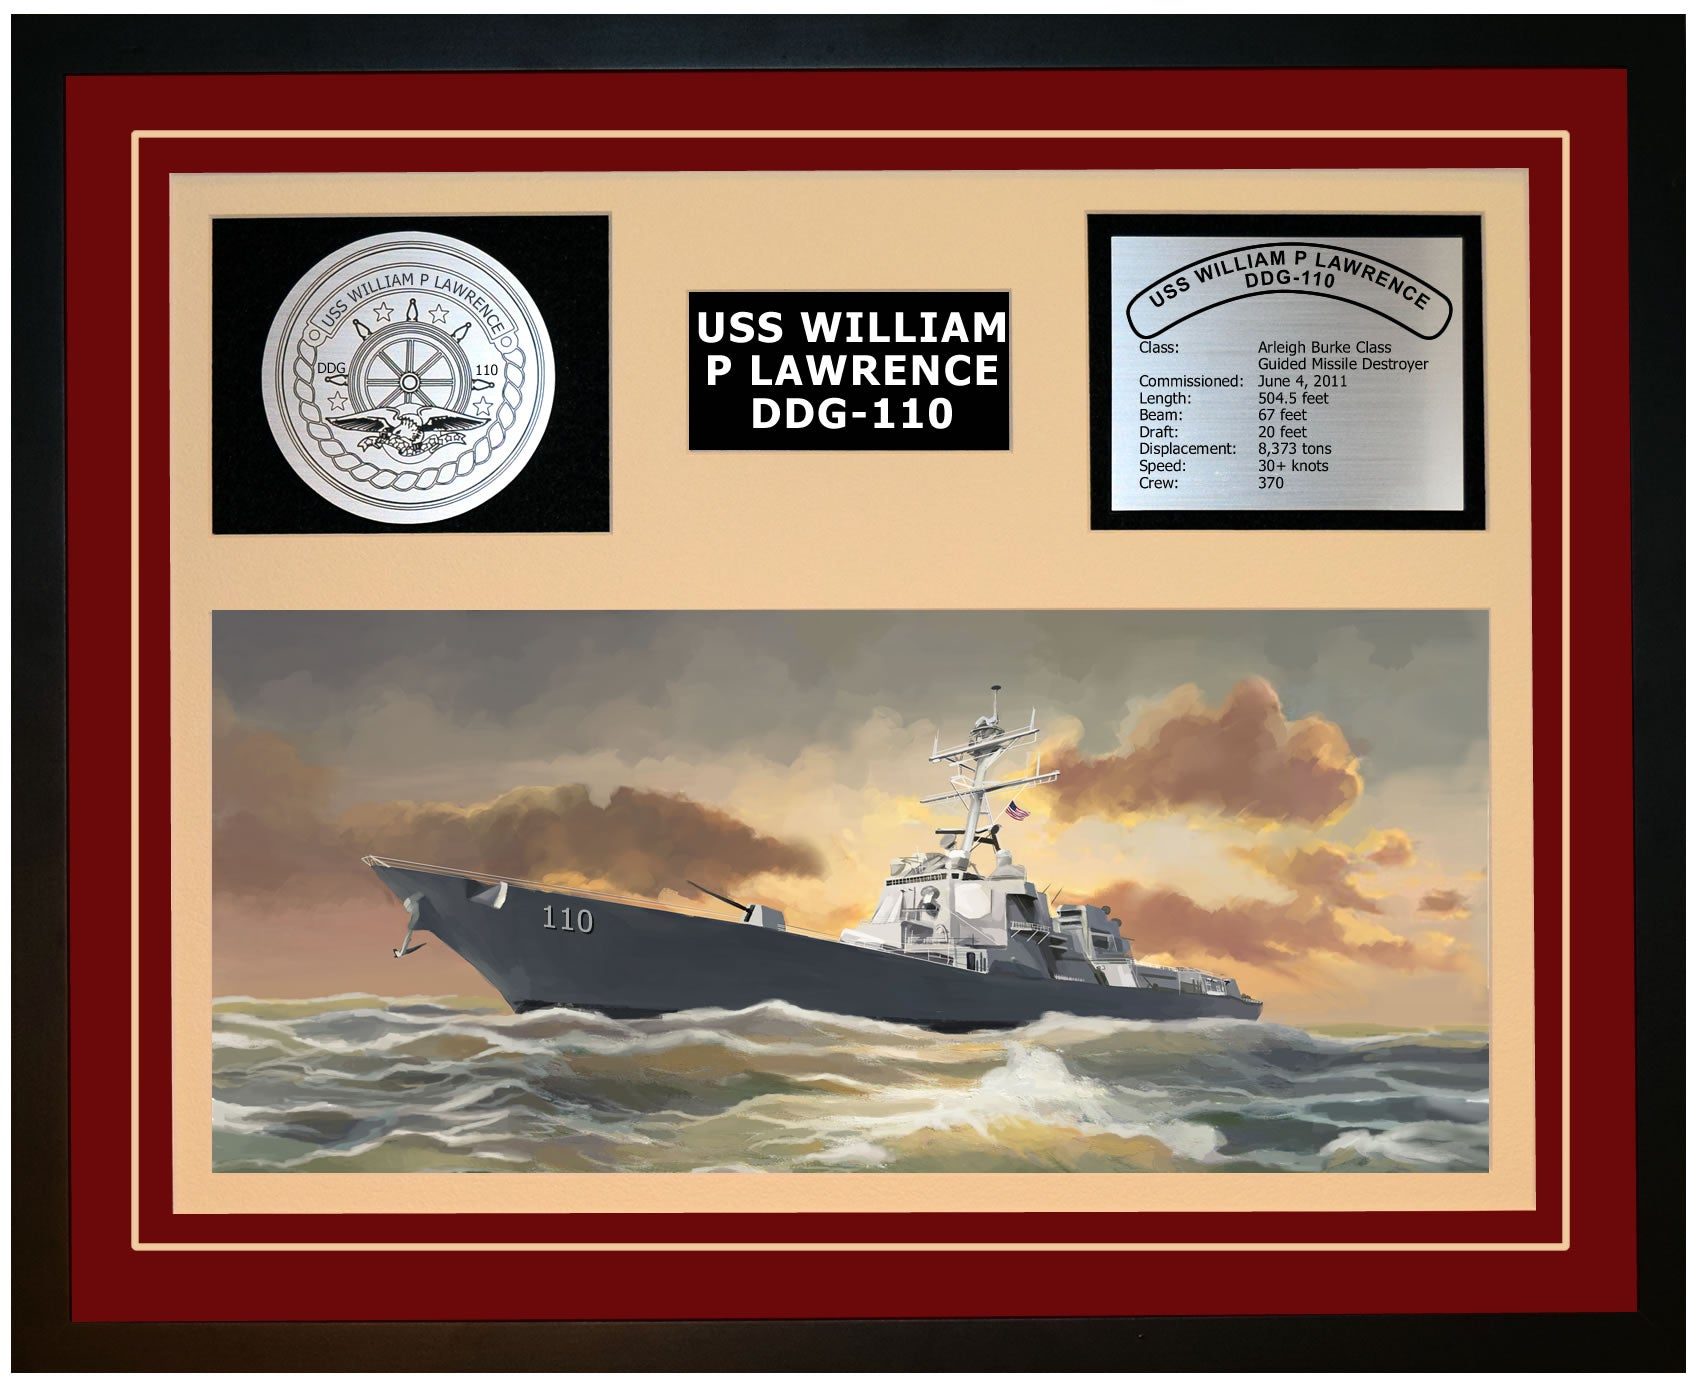 USS WILLIAM P LAWRENCE DDG-110 Framed Navy Ship Display Burgundy